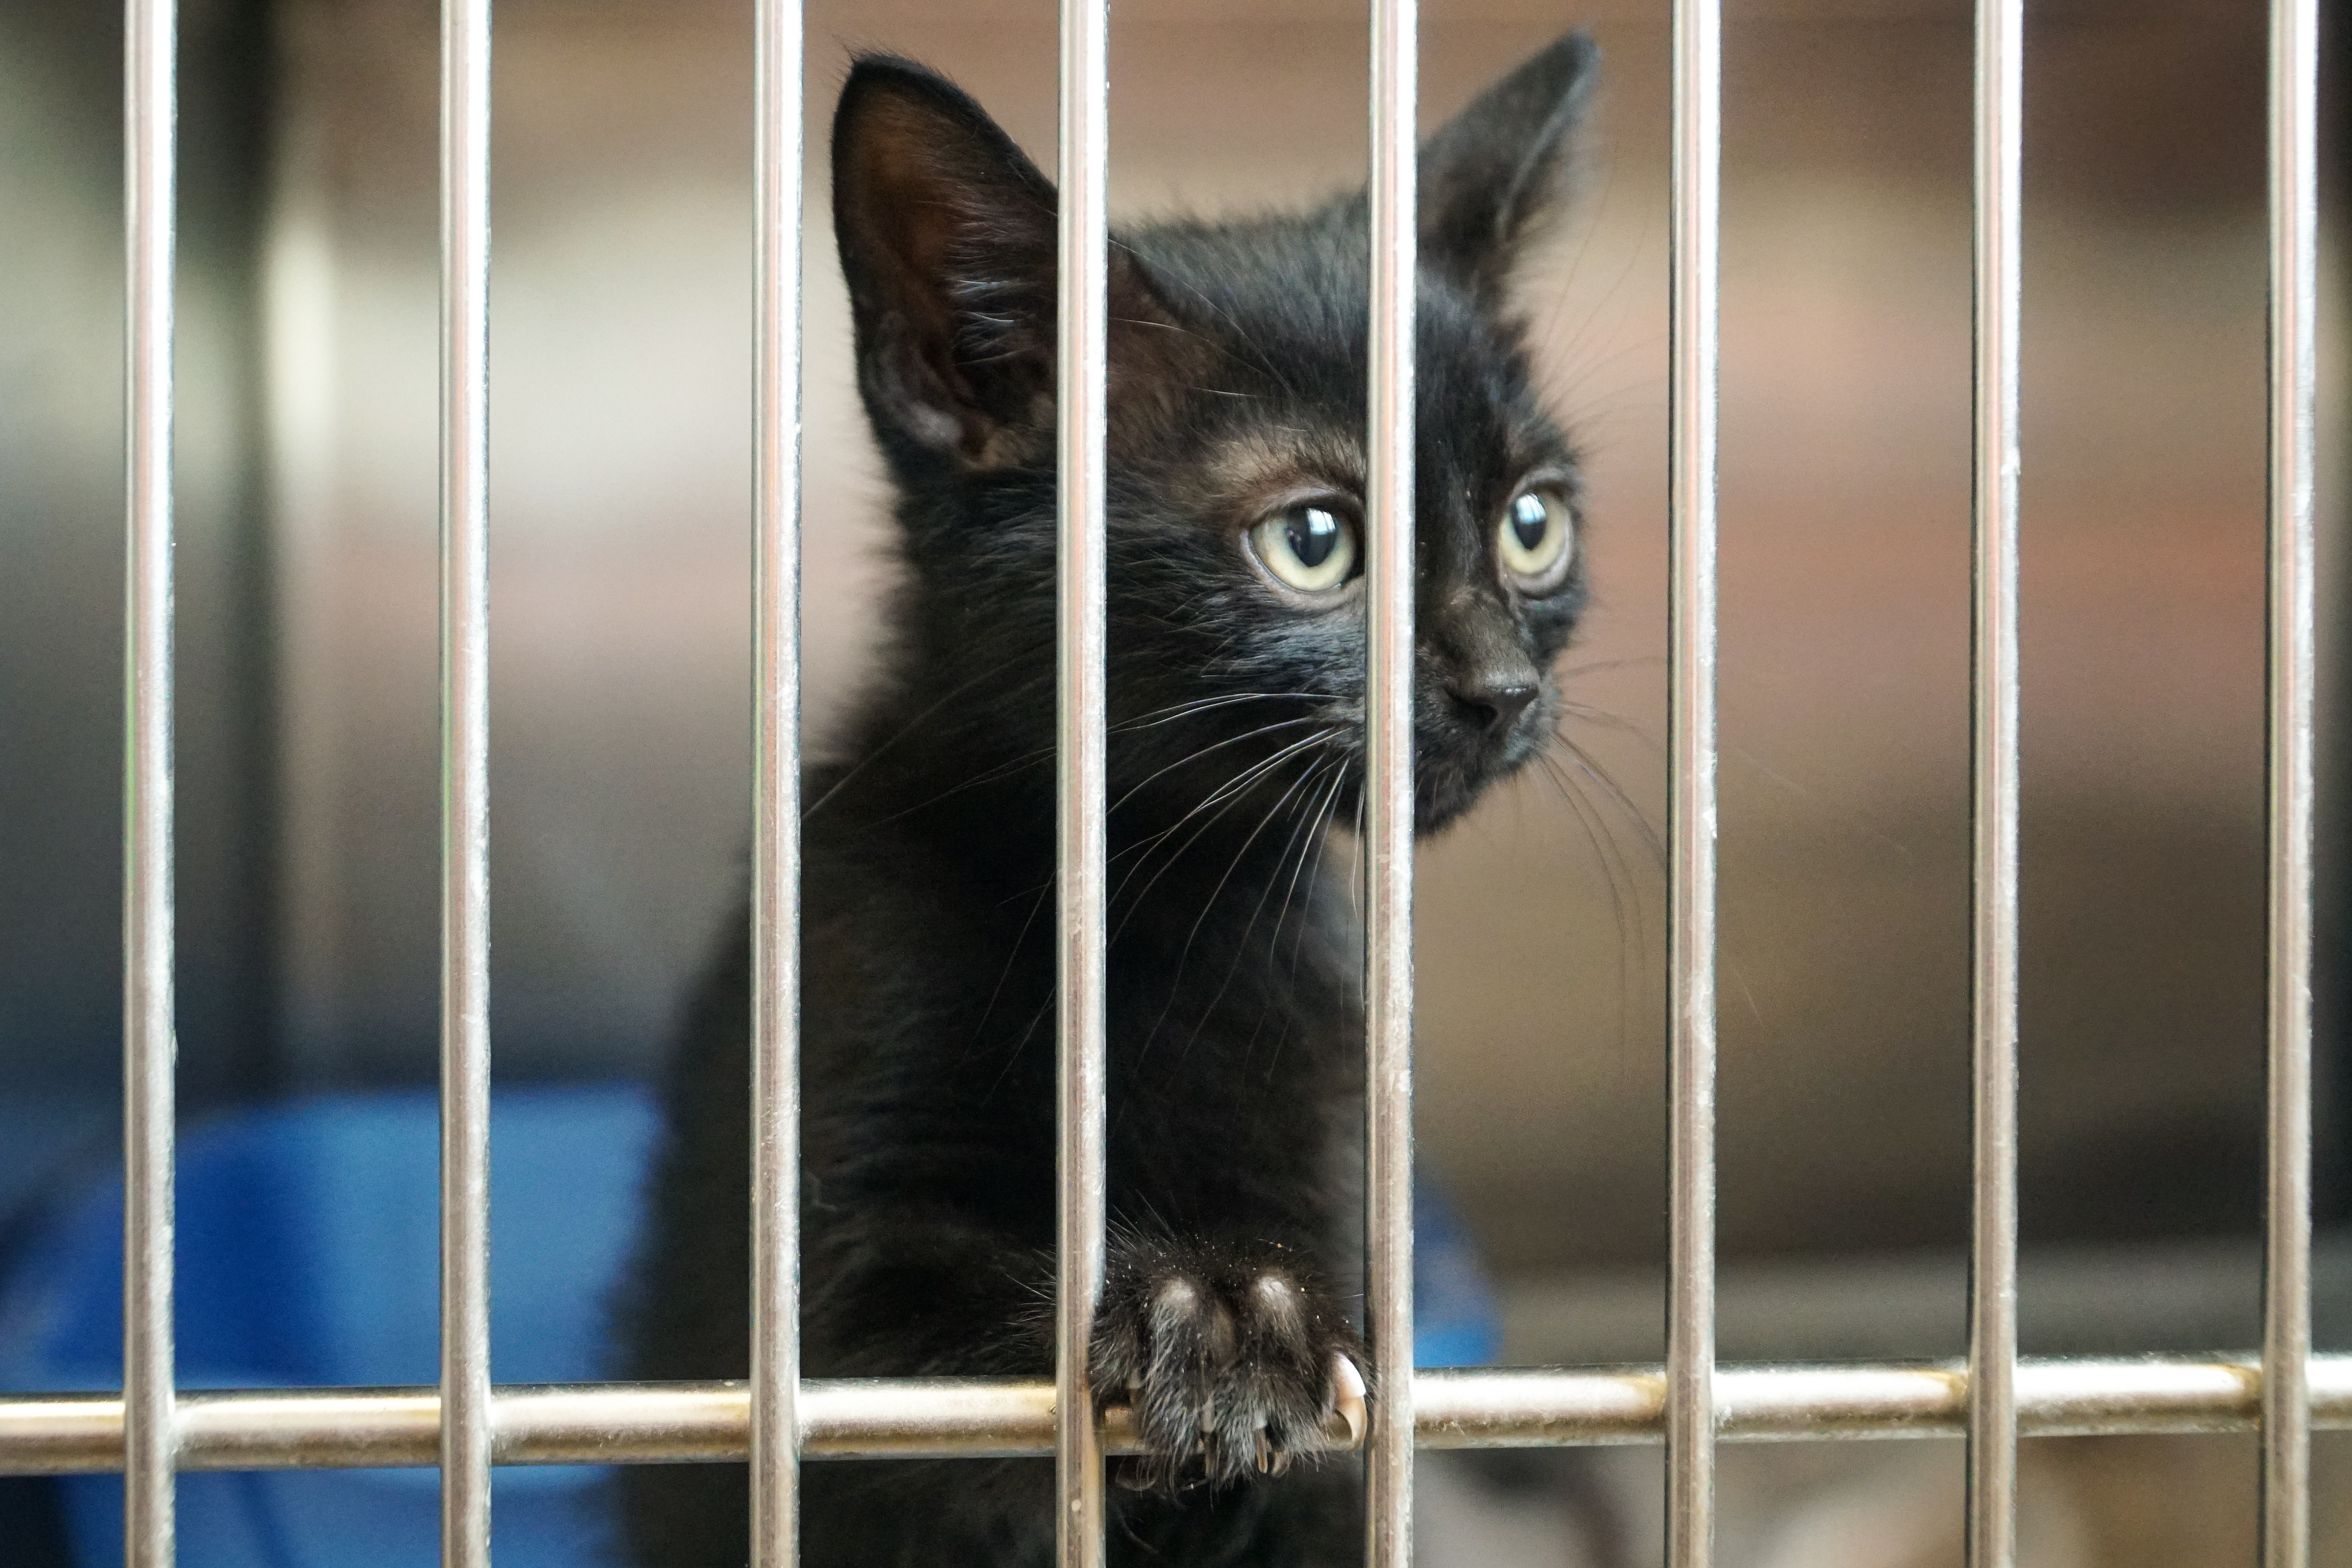 A black cat in a cage